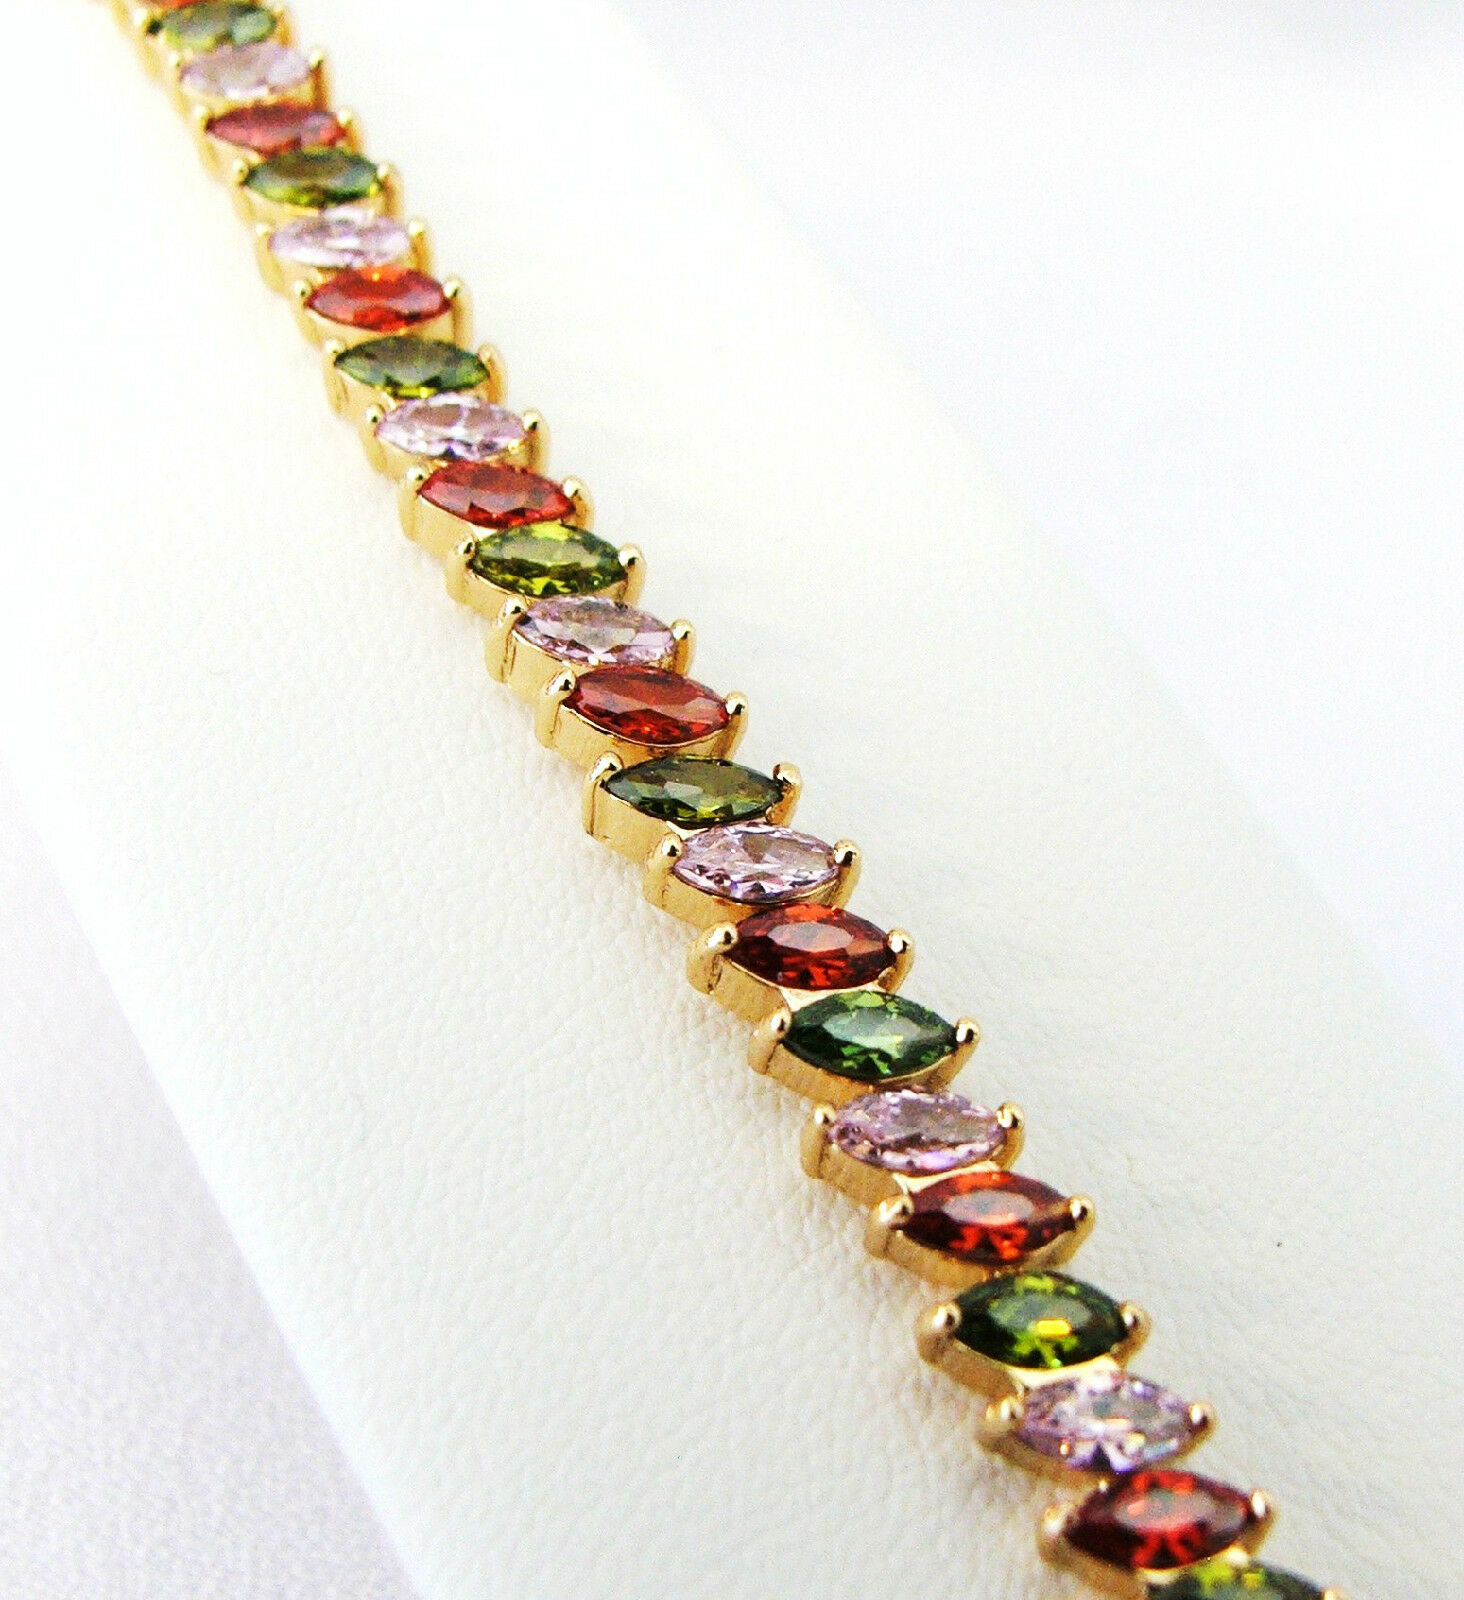 18K gold Plated 13.8 Ct Pink Sapphire, Emerald, and Red Garnet CZ Bracelet, 7